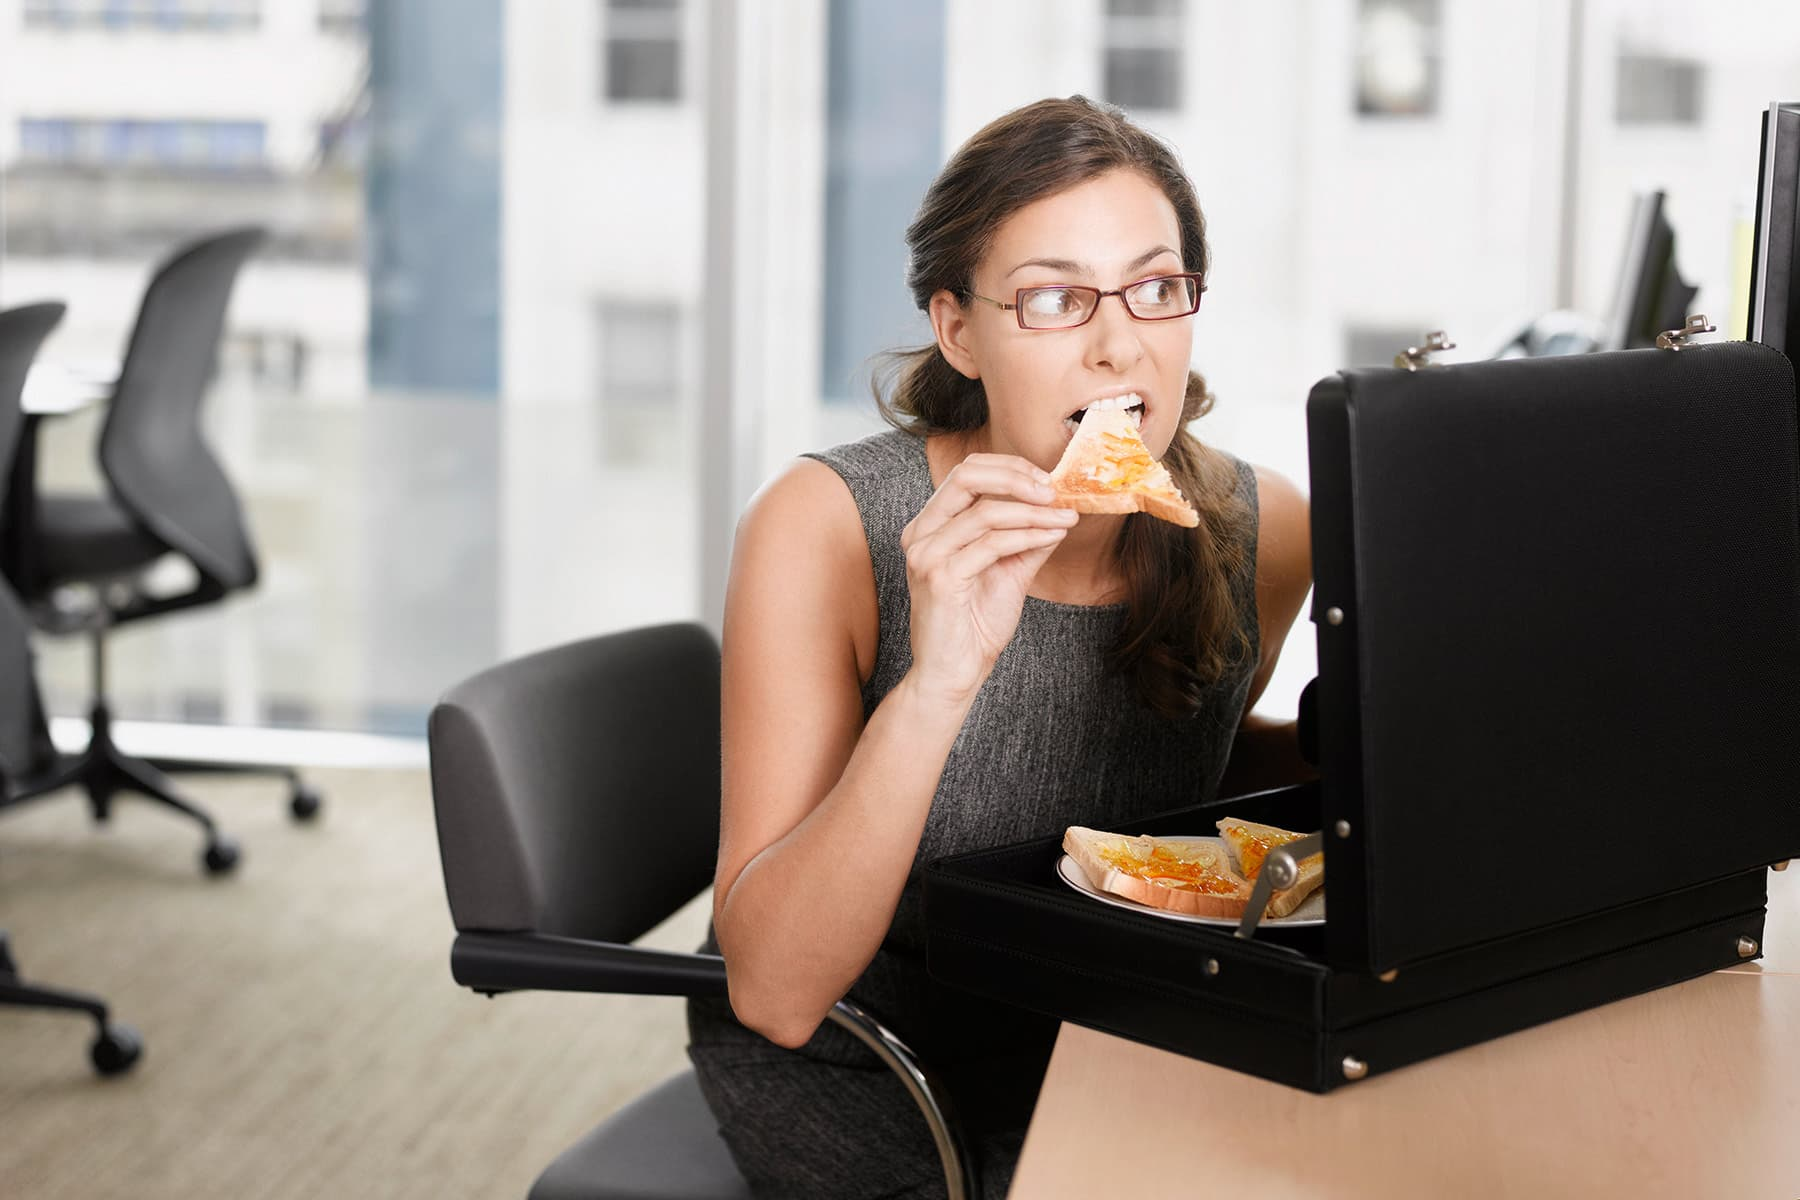 Two Common Eating Habits That Can Really Pile on Pounds thumbnail